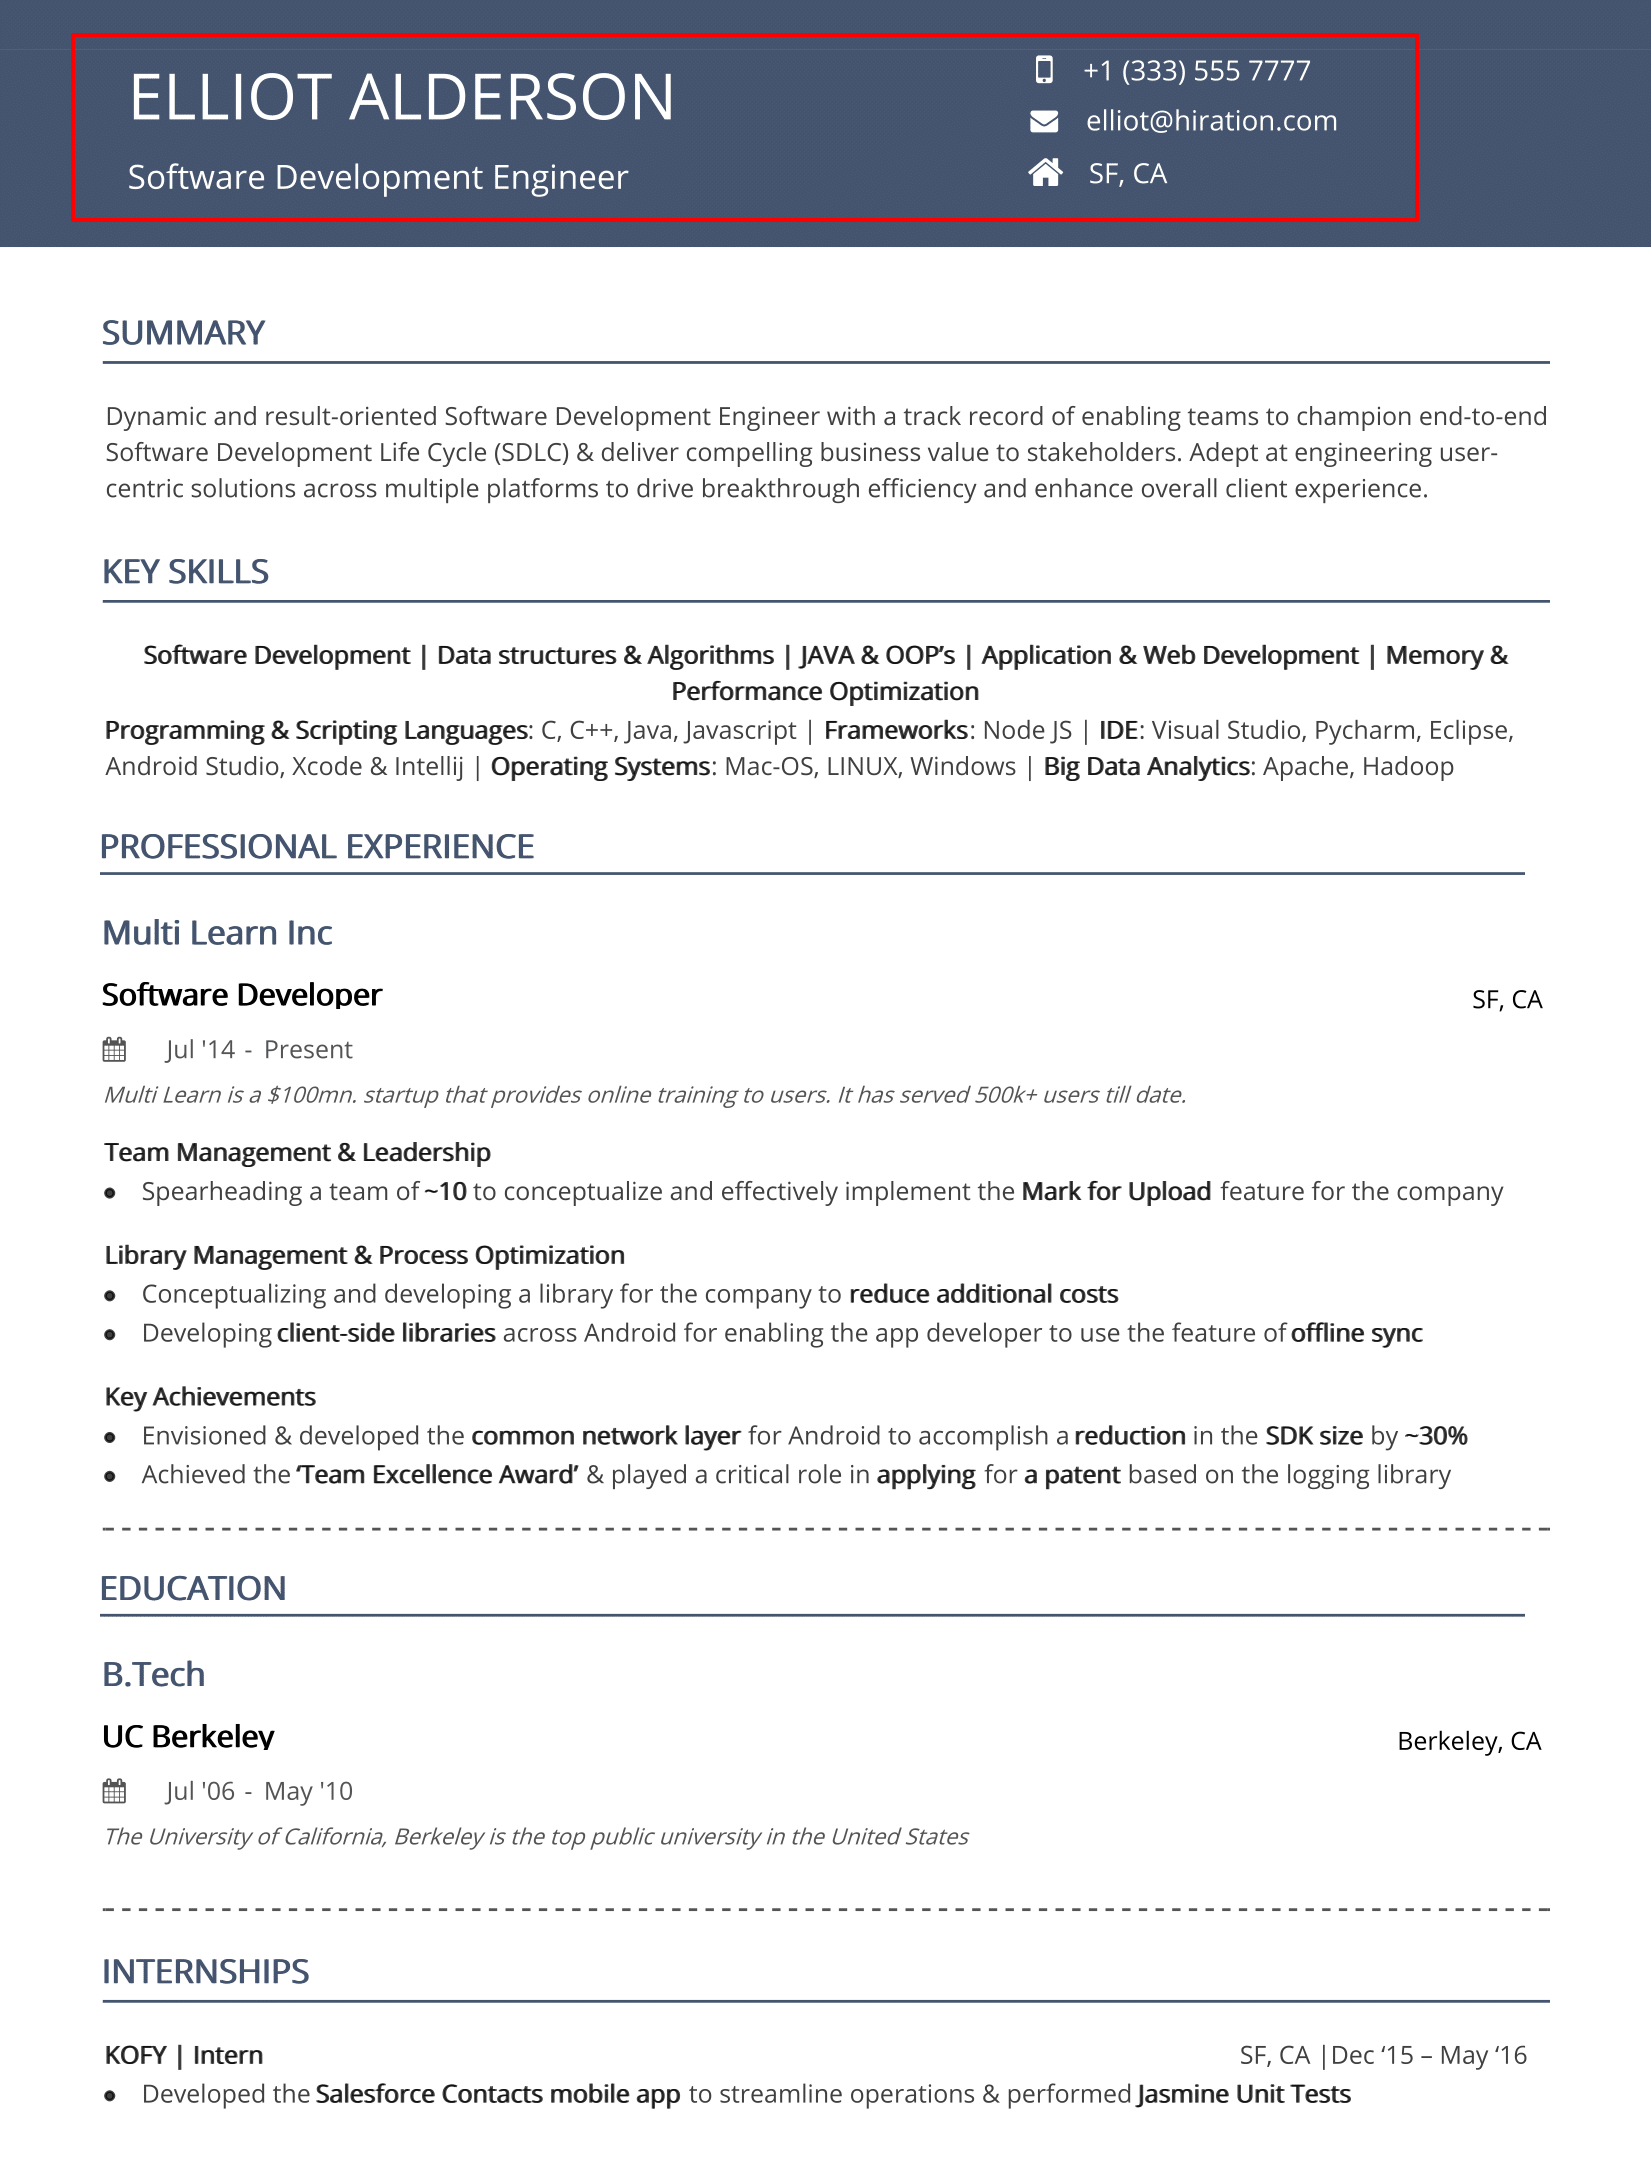 Resume Header 2020 Guide To Contact Information In Resume Examples